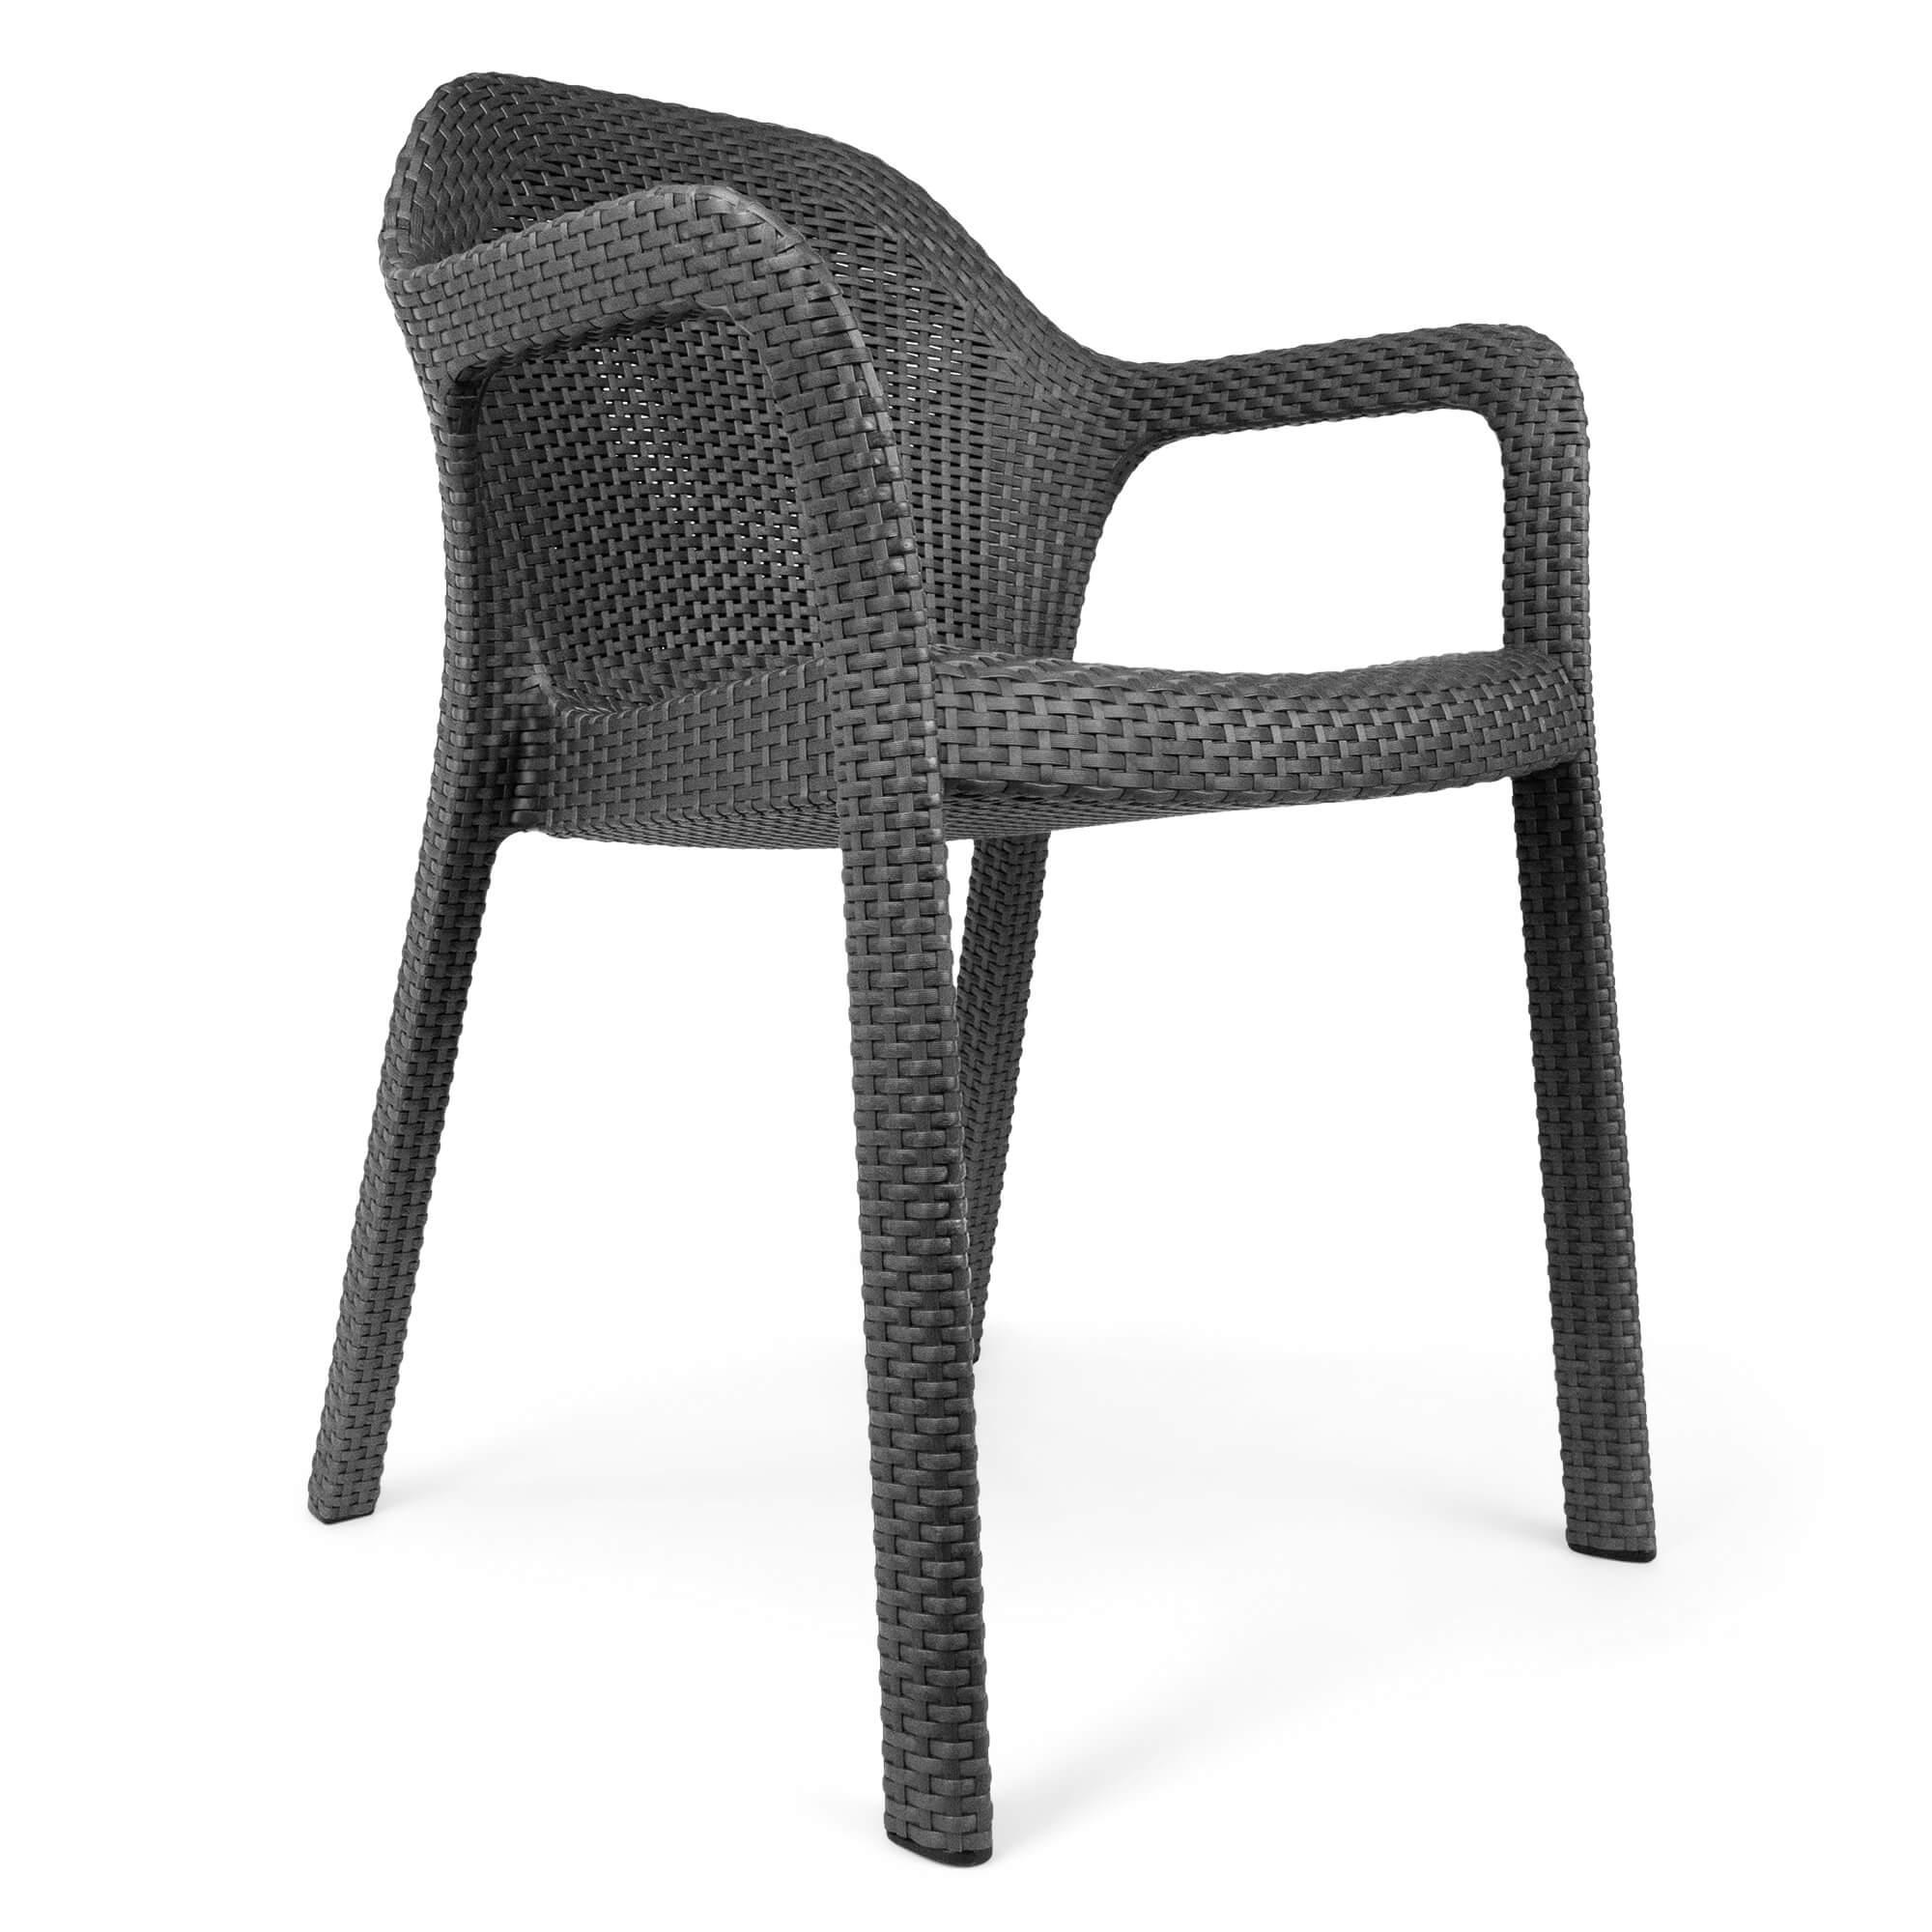 Chaise empilable moka - Image 4